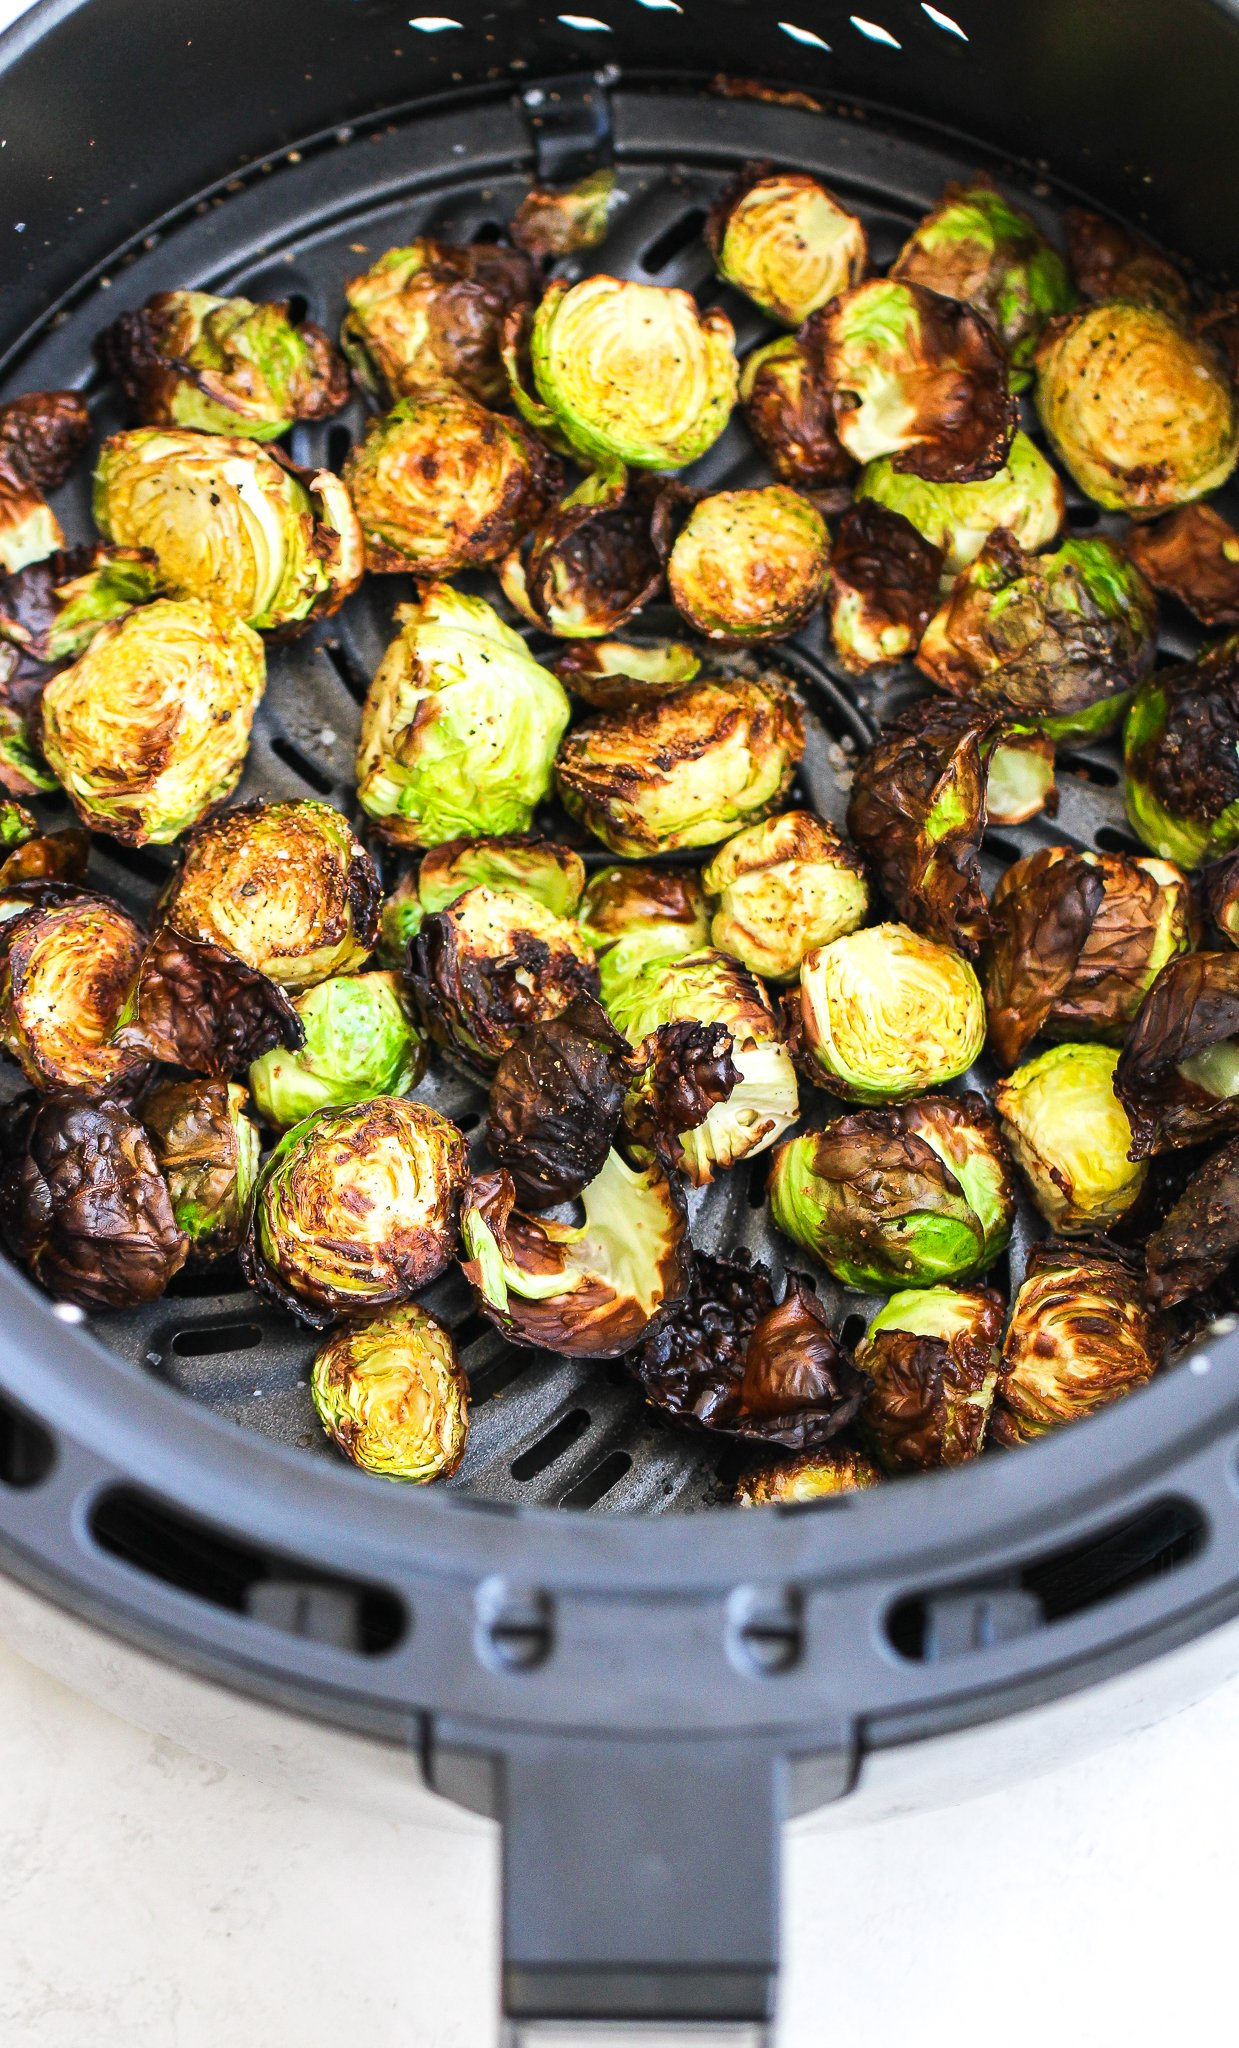 crispy brussels sprouts in the air fryer container